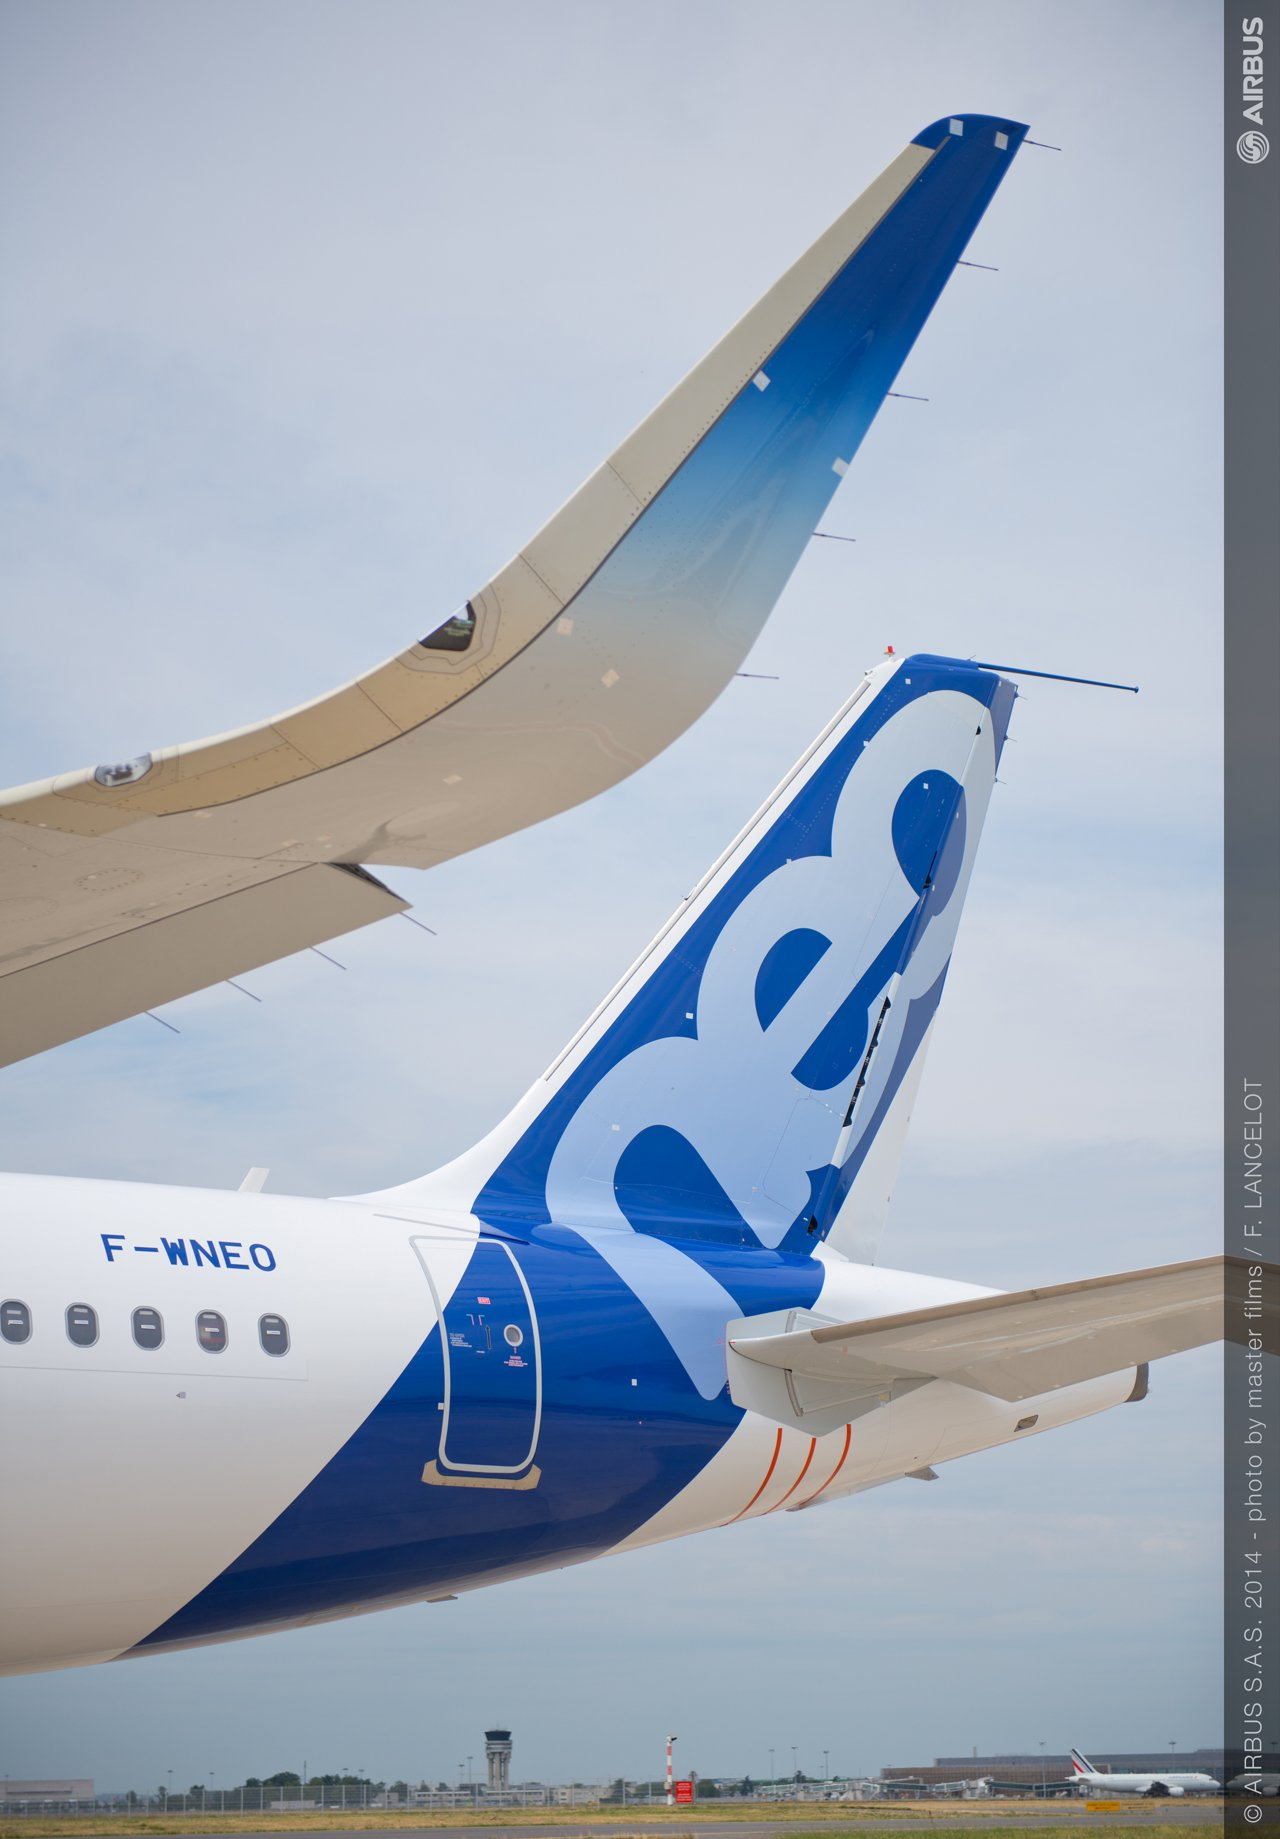 As the first A320neo jetliner scheduled to fly, MSN6101 will kick off a test campaign that includes eight developmental aircraft: two A320neos, one A319neo and one A321neo for both engine options